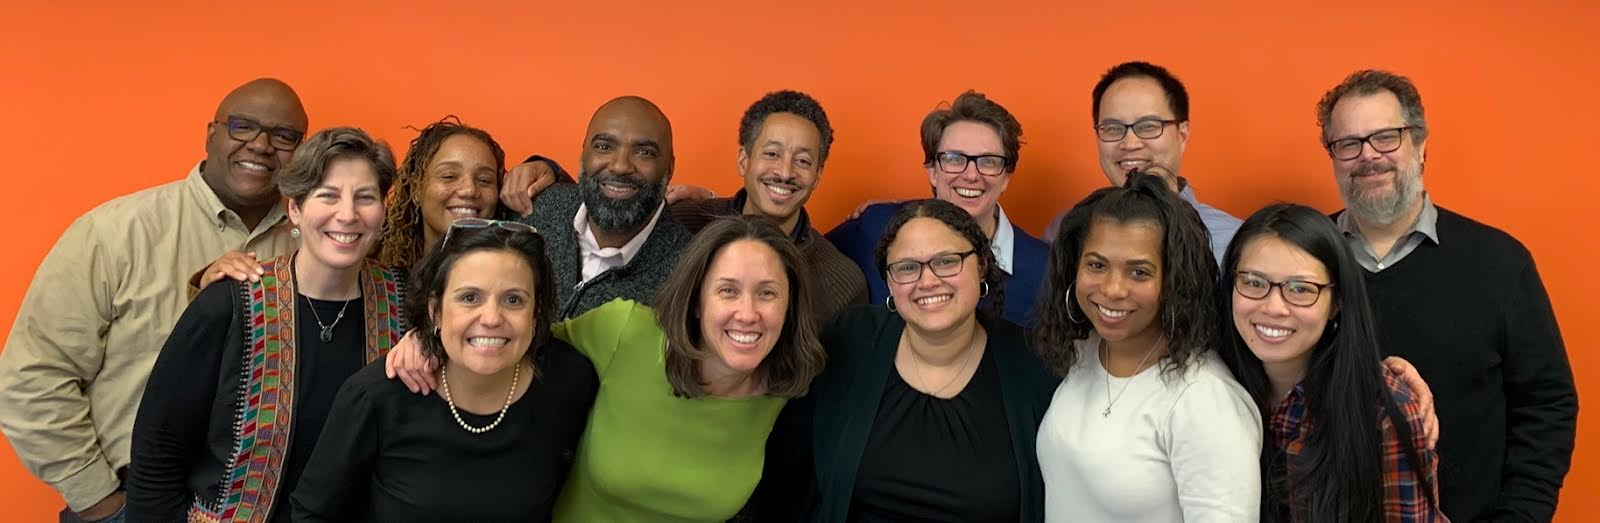 2019 Diversity, Equity, and Inclusion Committee - Philanthropy Network Greater Philadelphia